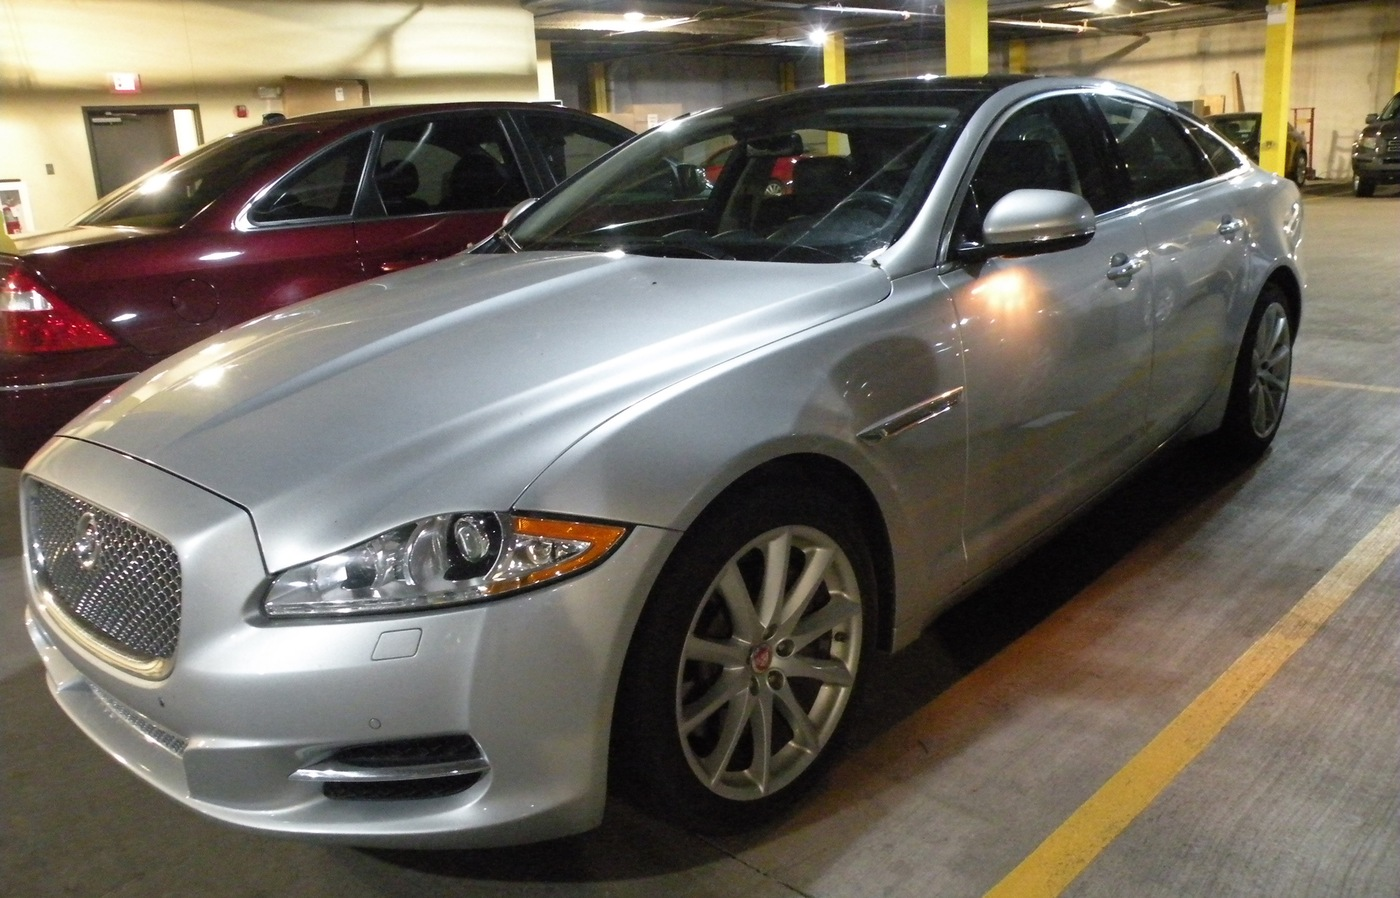 Silver luxury vehicle in parking garage; vehicle was forfeited in Jackie Garton fraud case (Memphis Field Office)